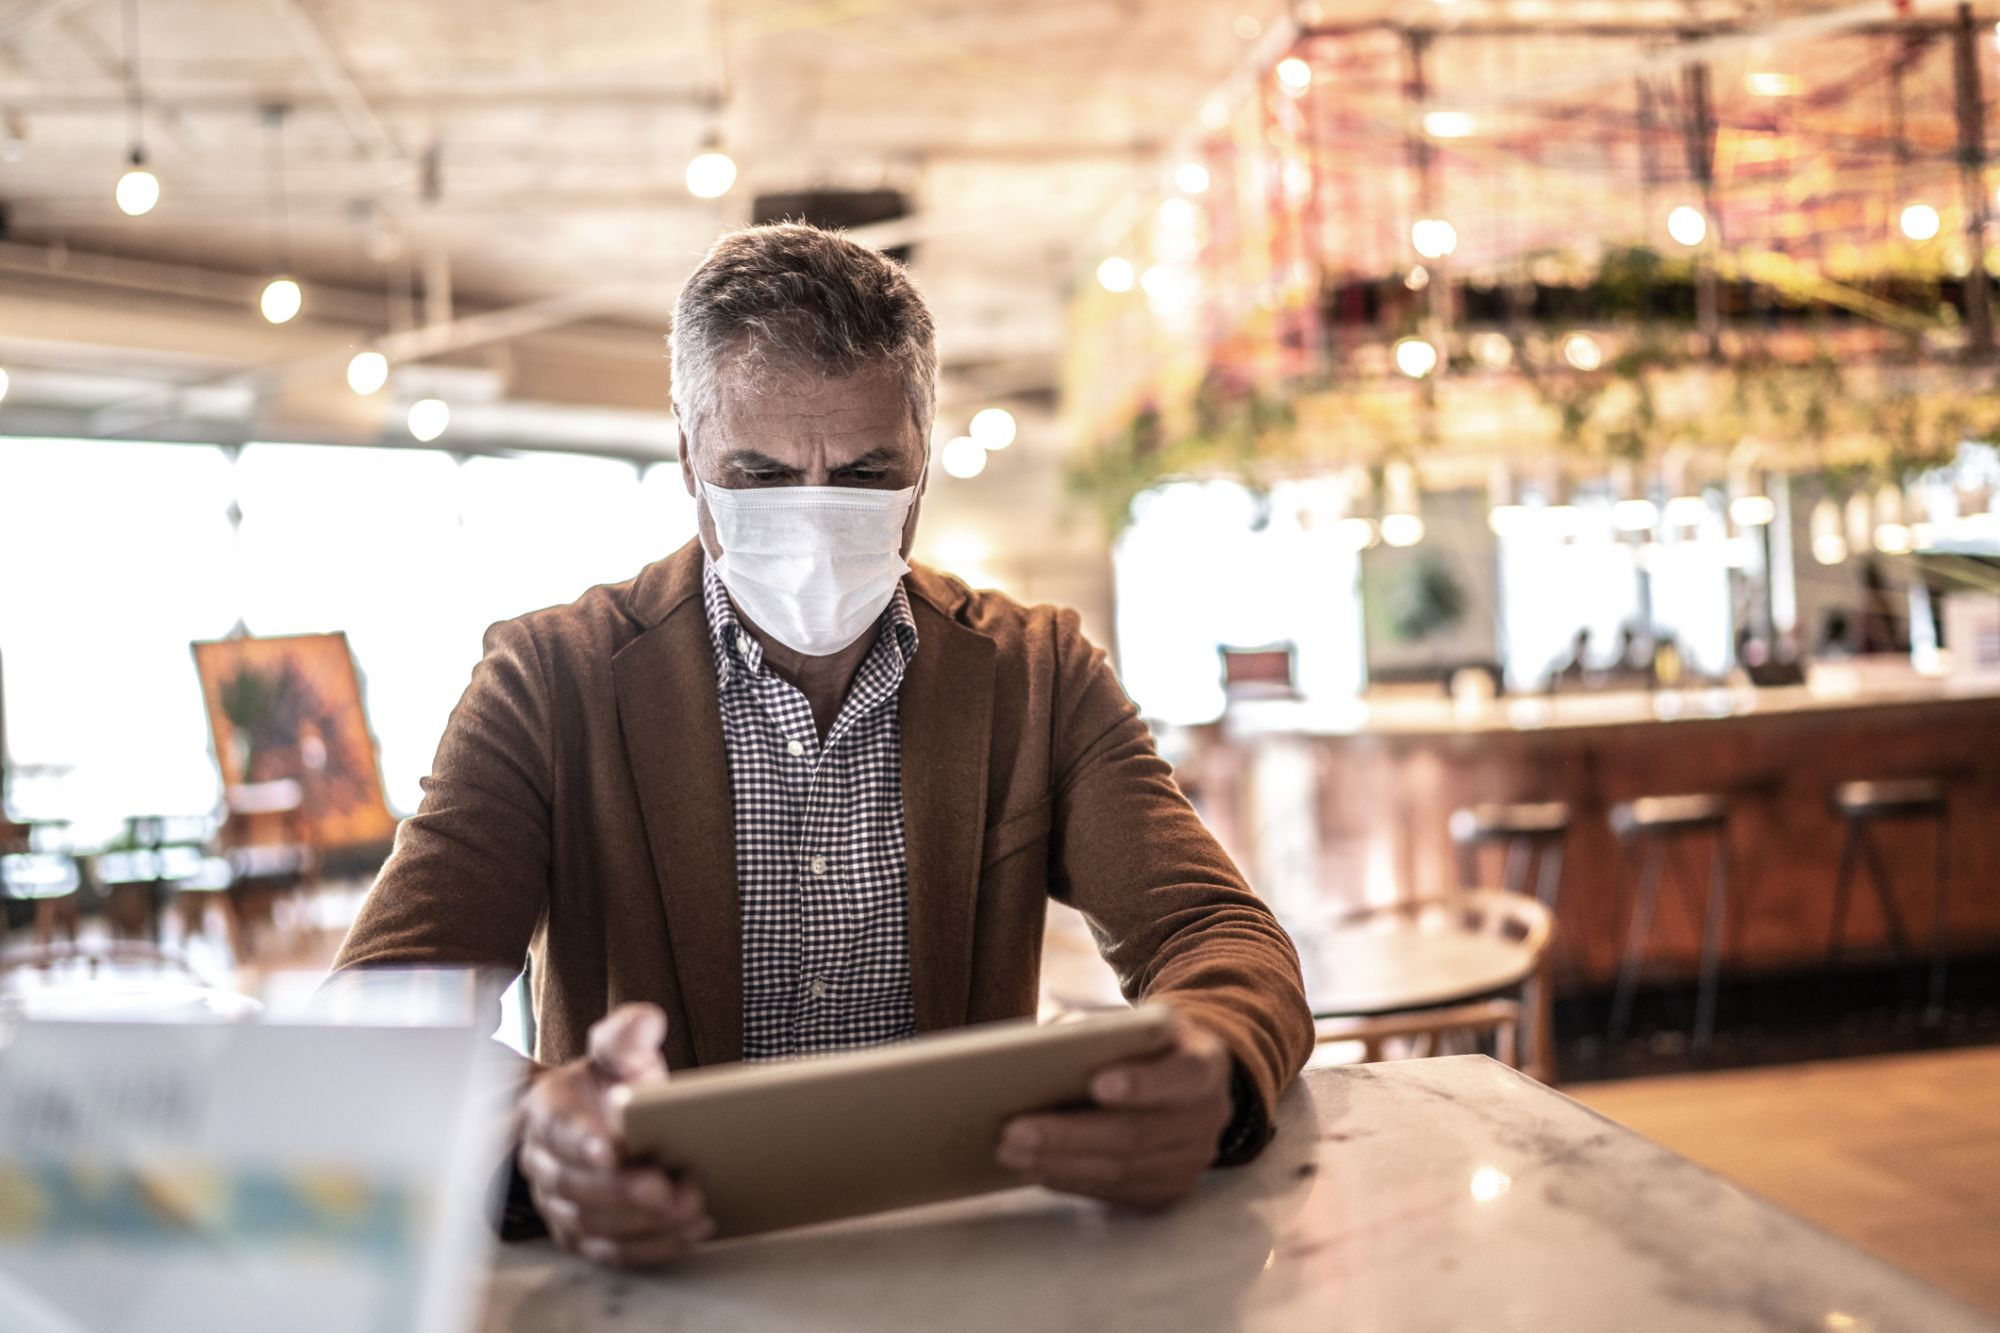 5 Steps to Help Your Business Emerge Stronger from the Health Crisis